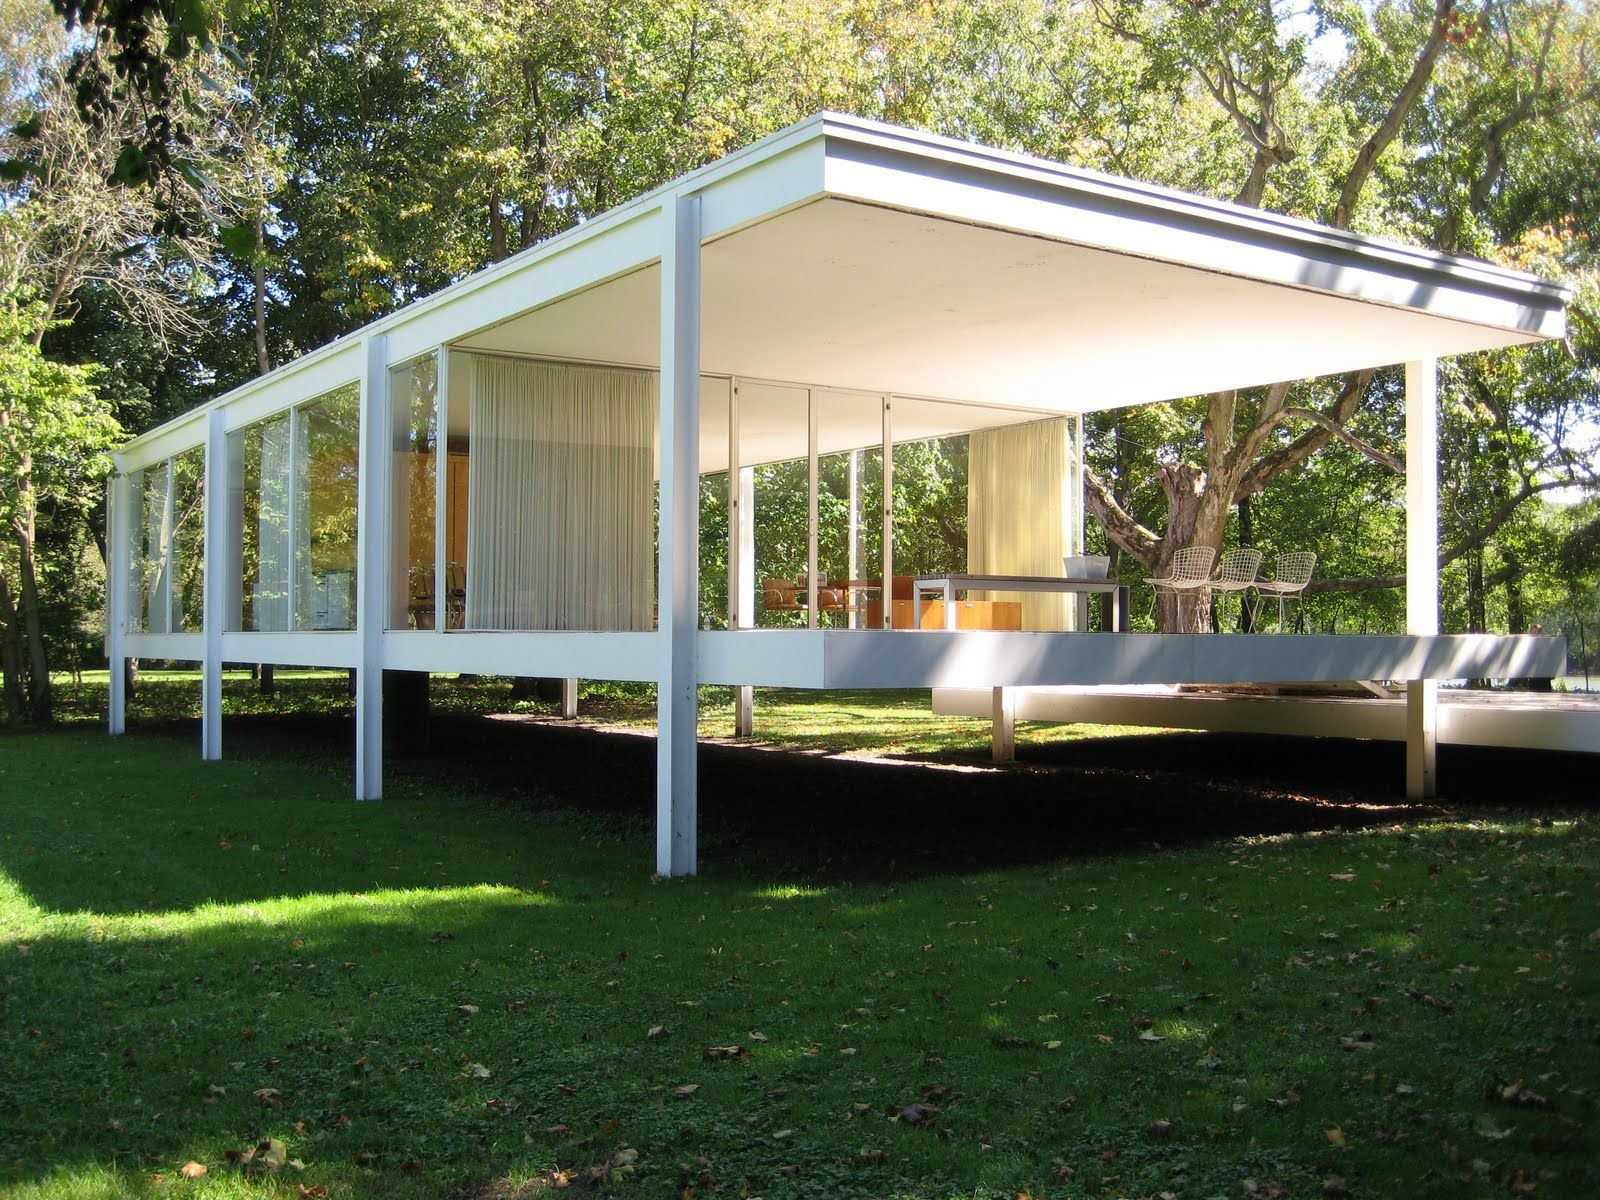 farnsworth house by ludwig mies van der rohe 1945 51. Black Bedroom Furniture Sets. Home Design Ideas